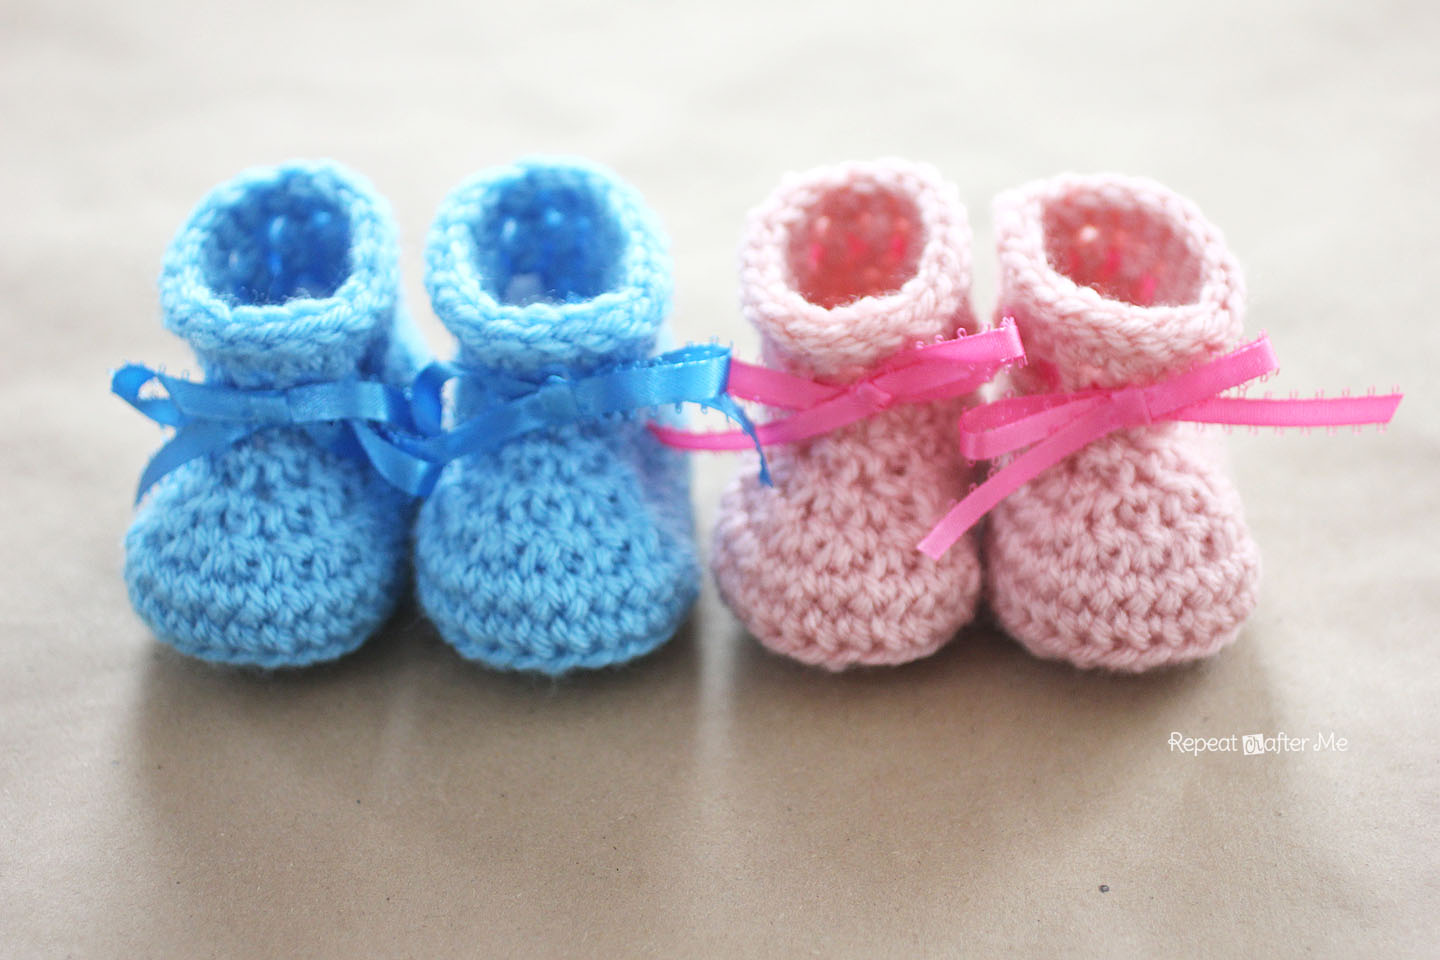 Crochet Baby Booties Pattern For Free : Crochet Newborn Baby Booties Pattern - Repeat Crafter Me